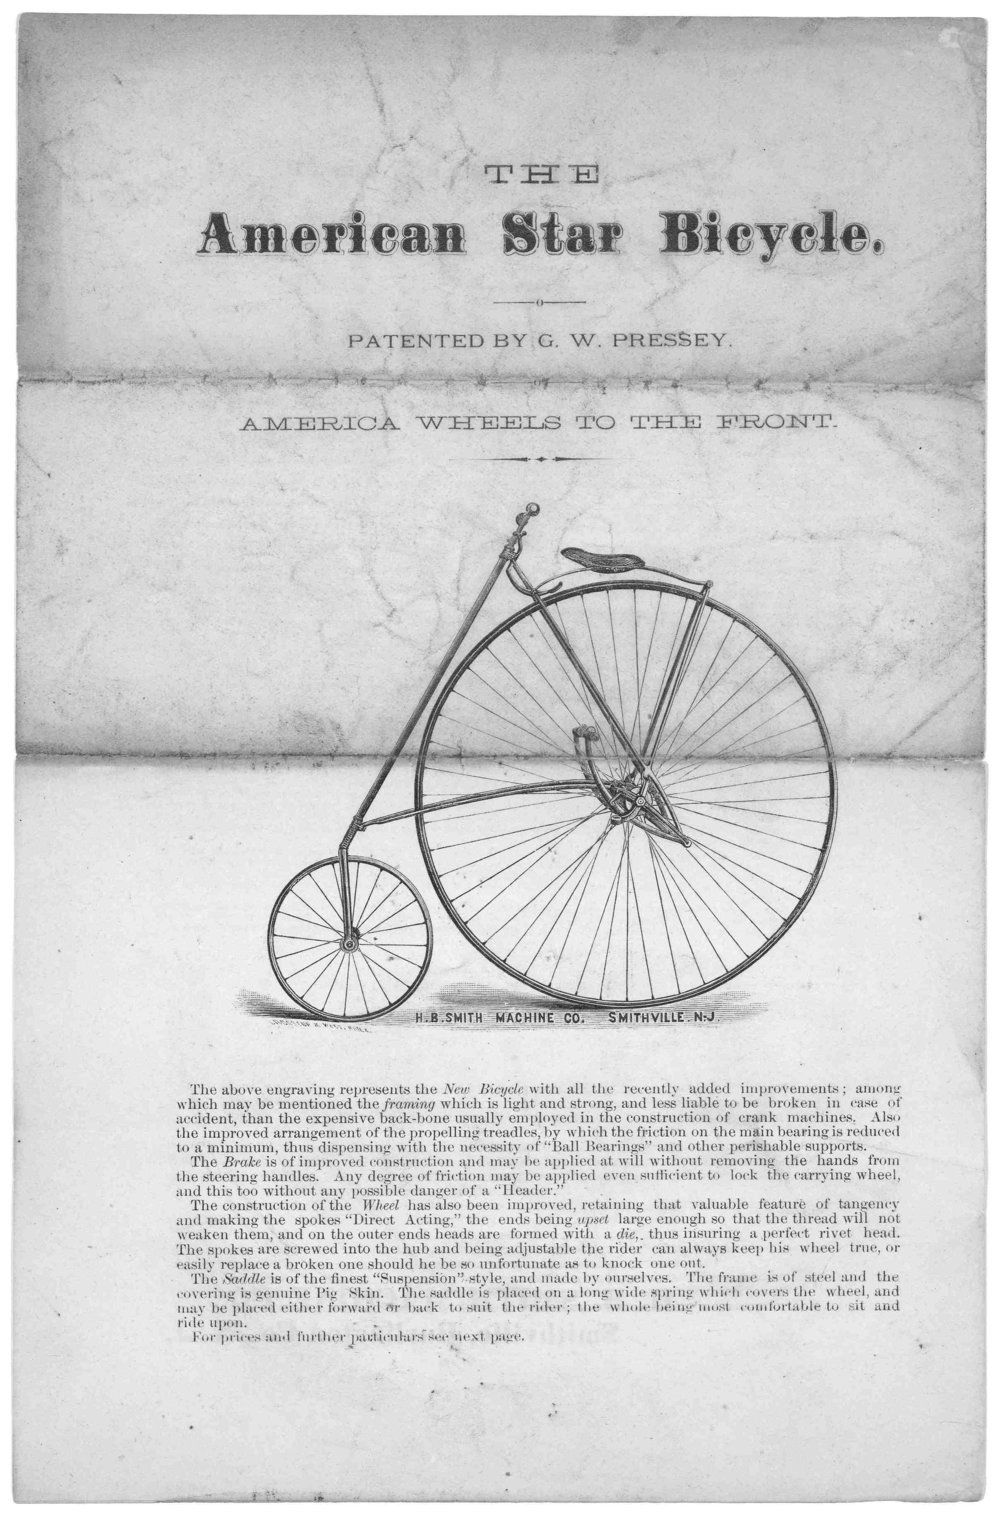 Library of Congress, Rare Book and Special Collections Division, Printed Ephemera Collection.